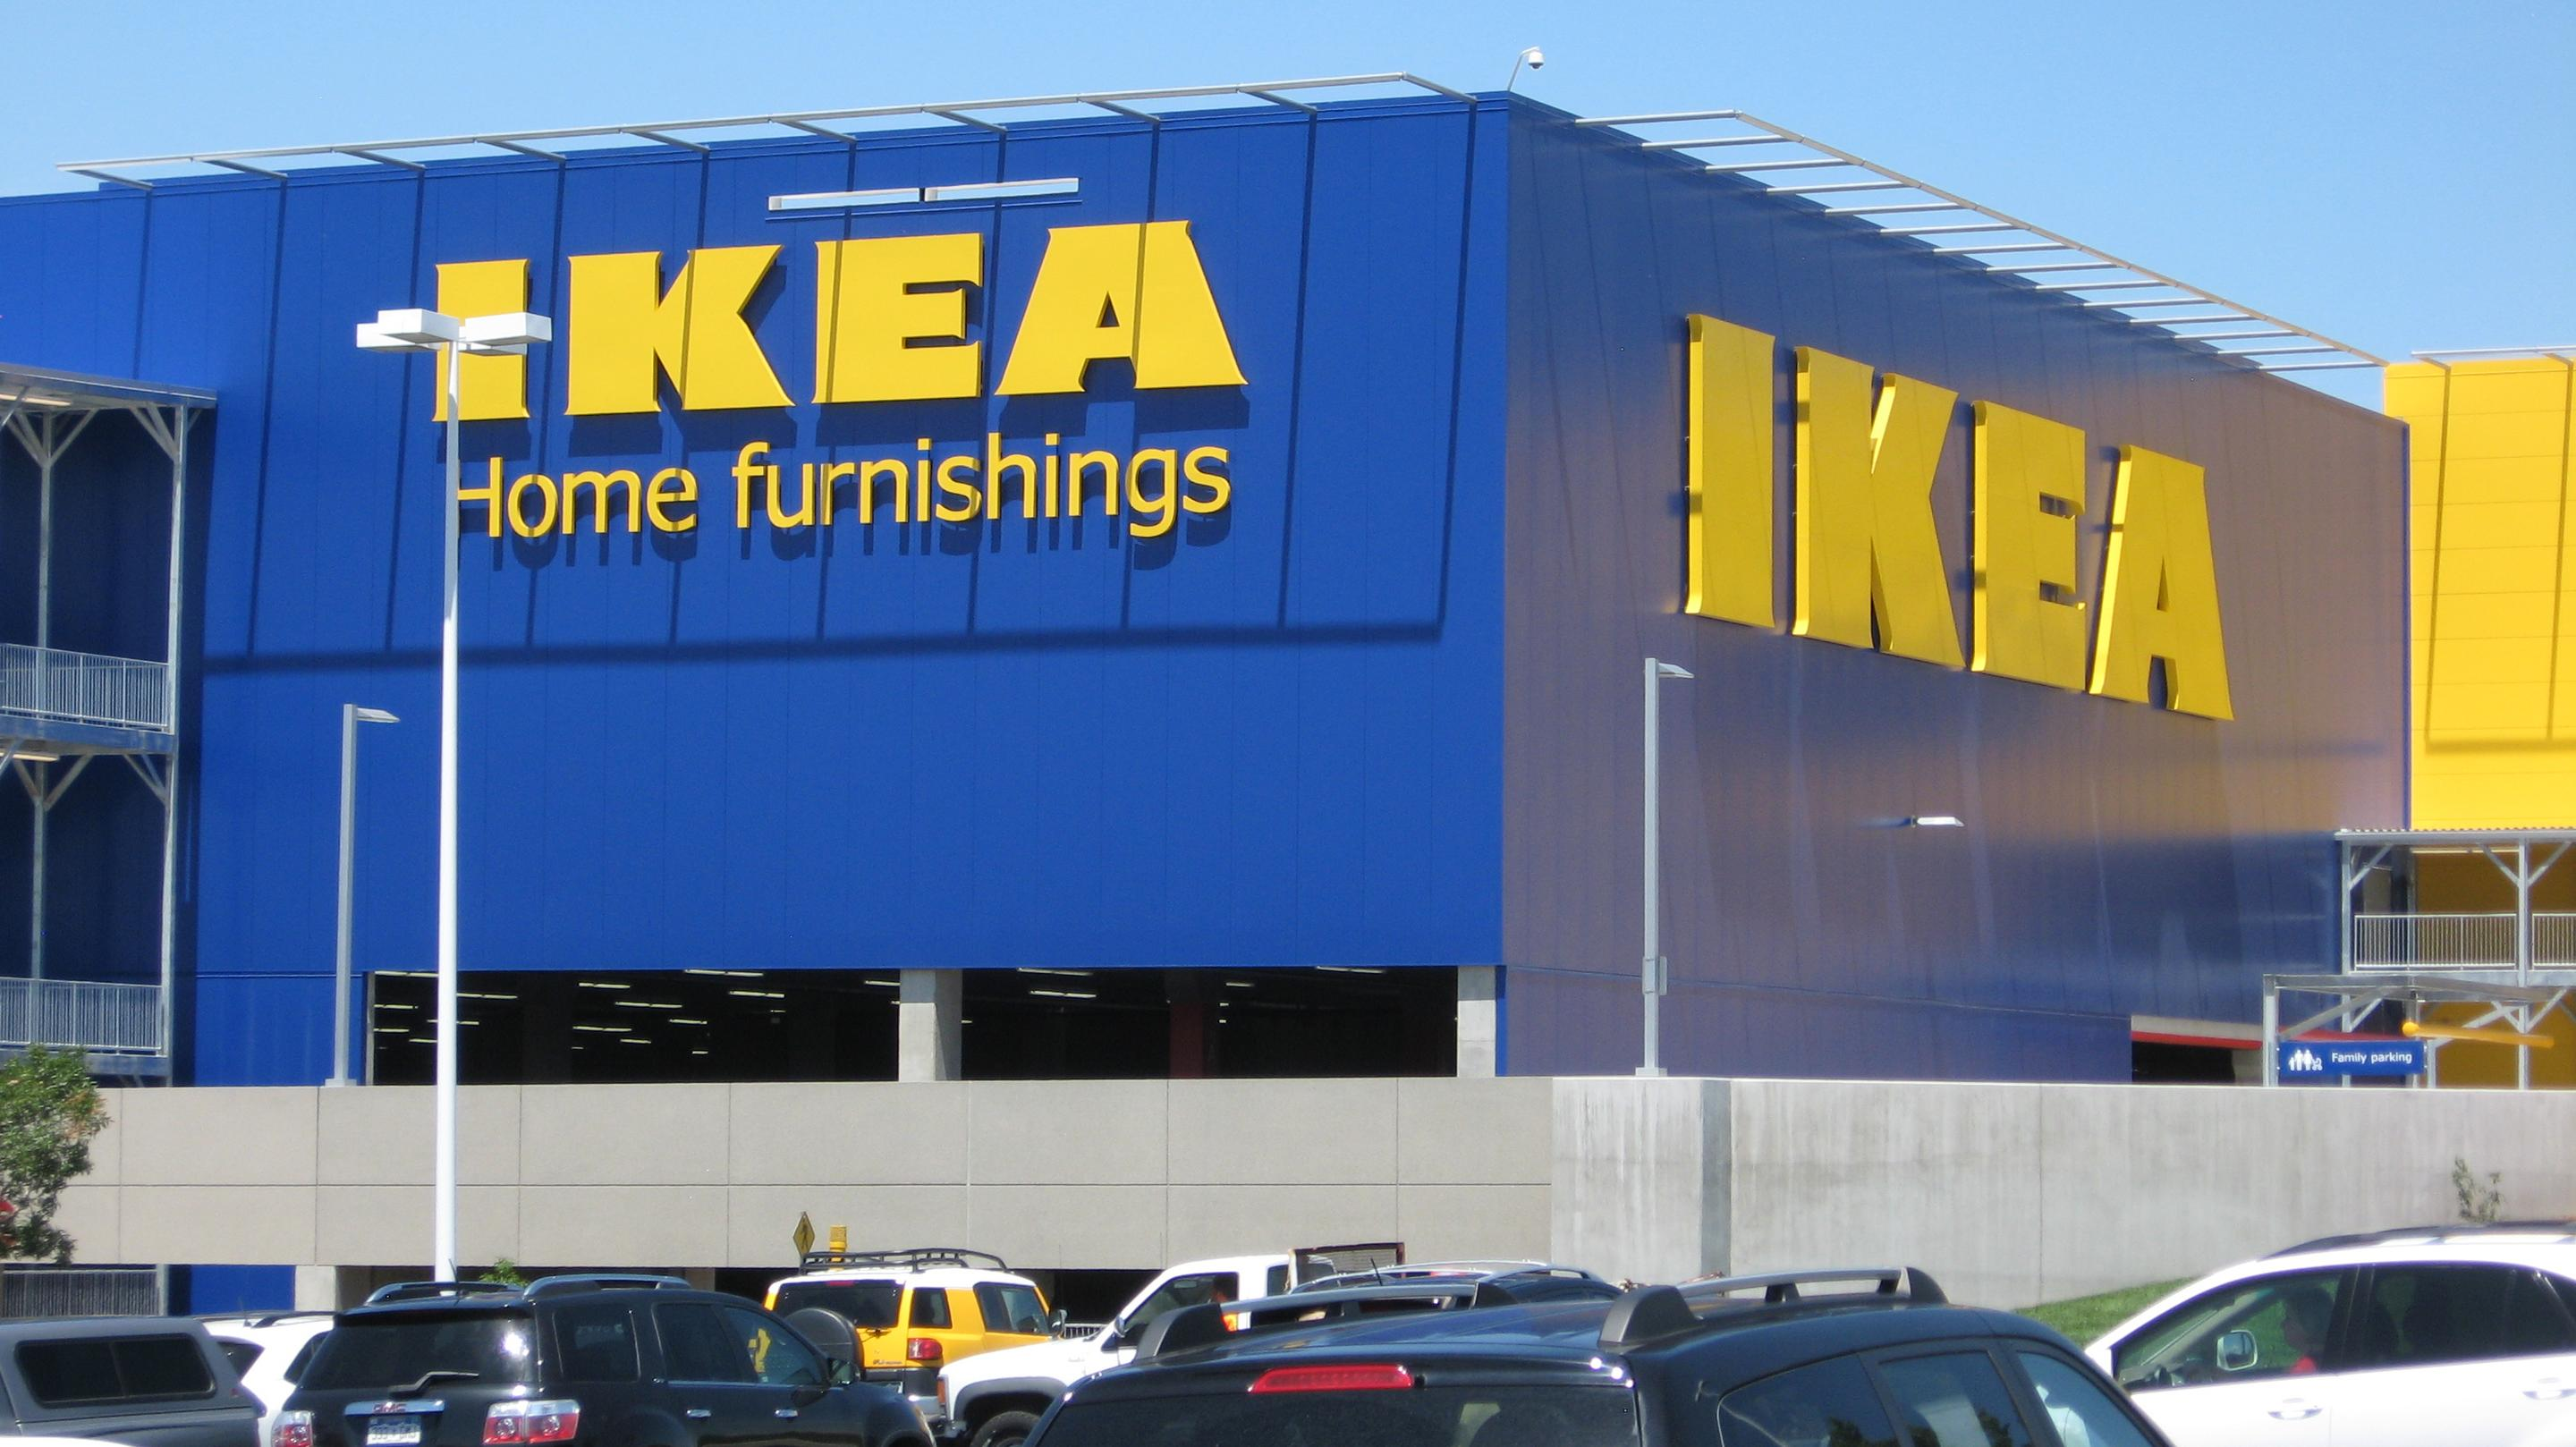 Business pulse polls quizzes and surveys denver for Ikea store hours philadelphia